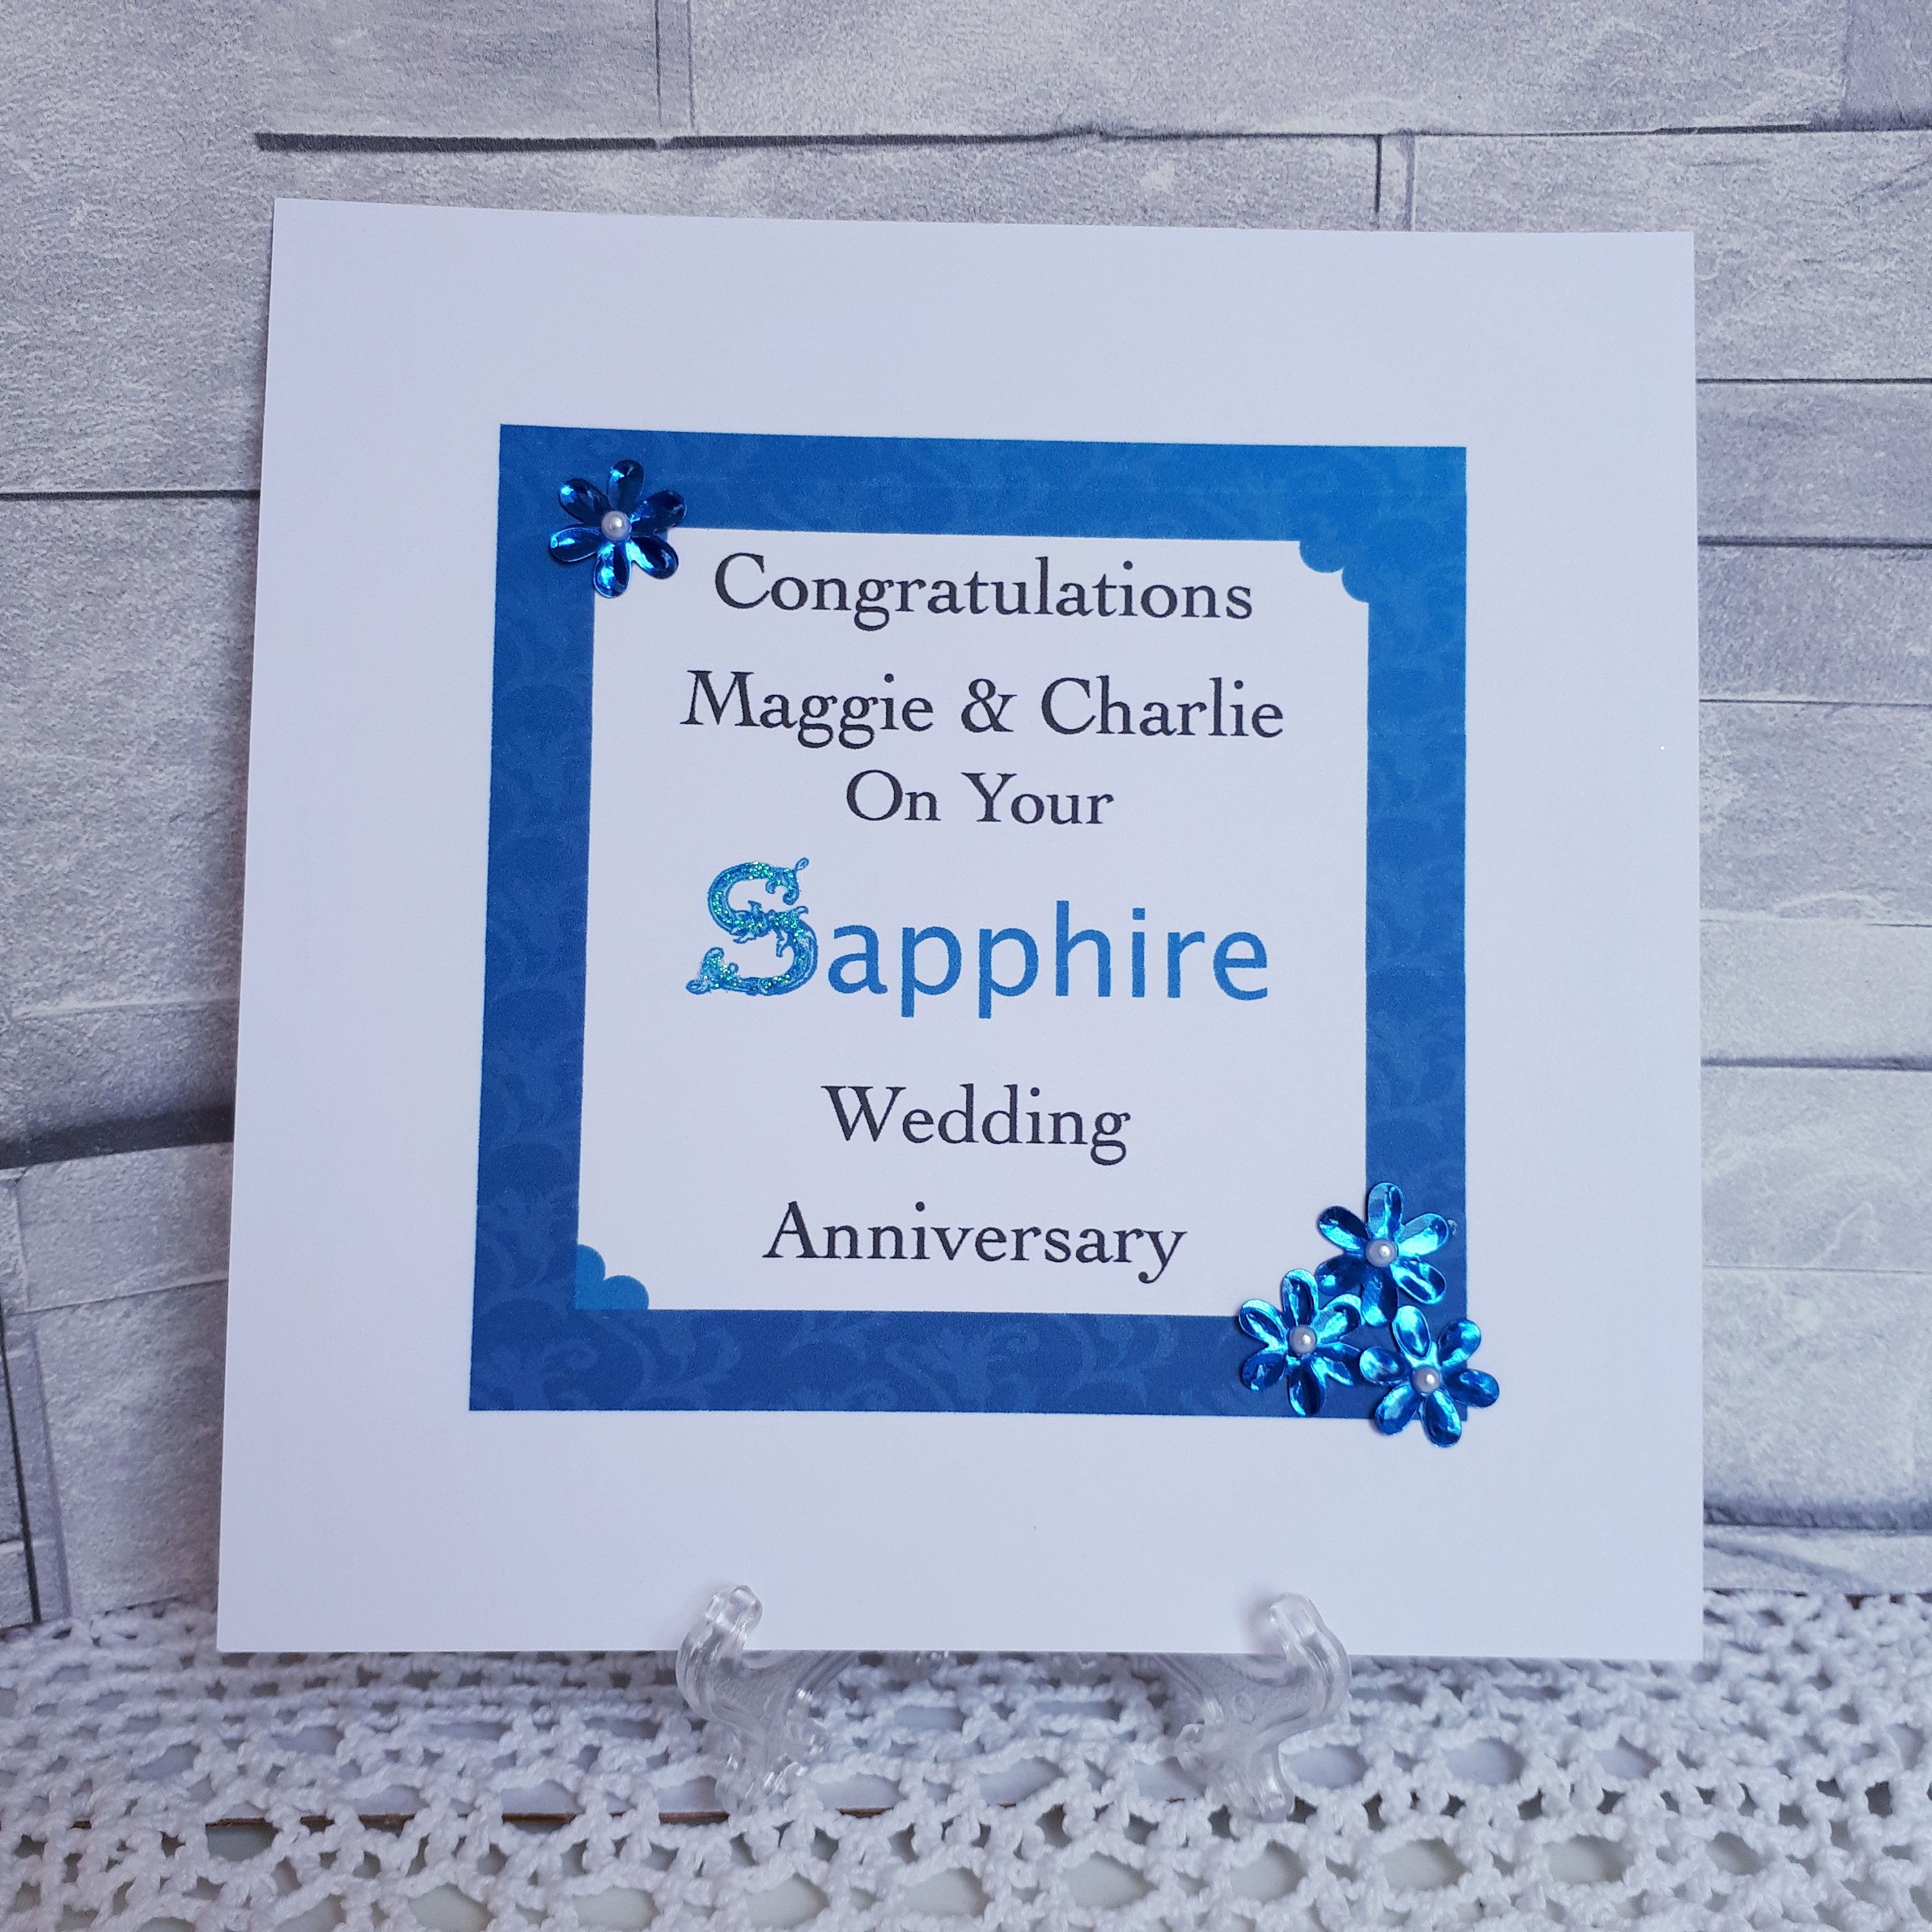 On Your Sapphire 45th Anniversary Card ~ With Best Wishes on your Very Special Day